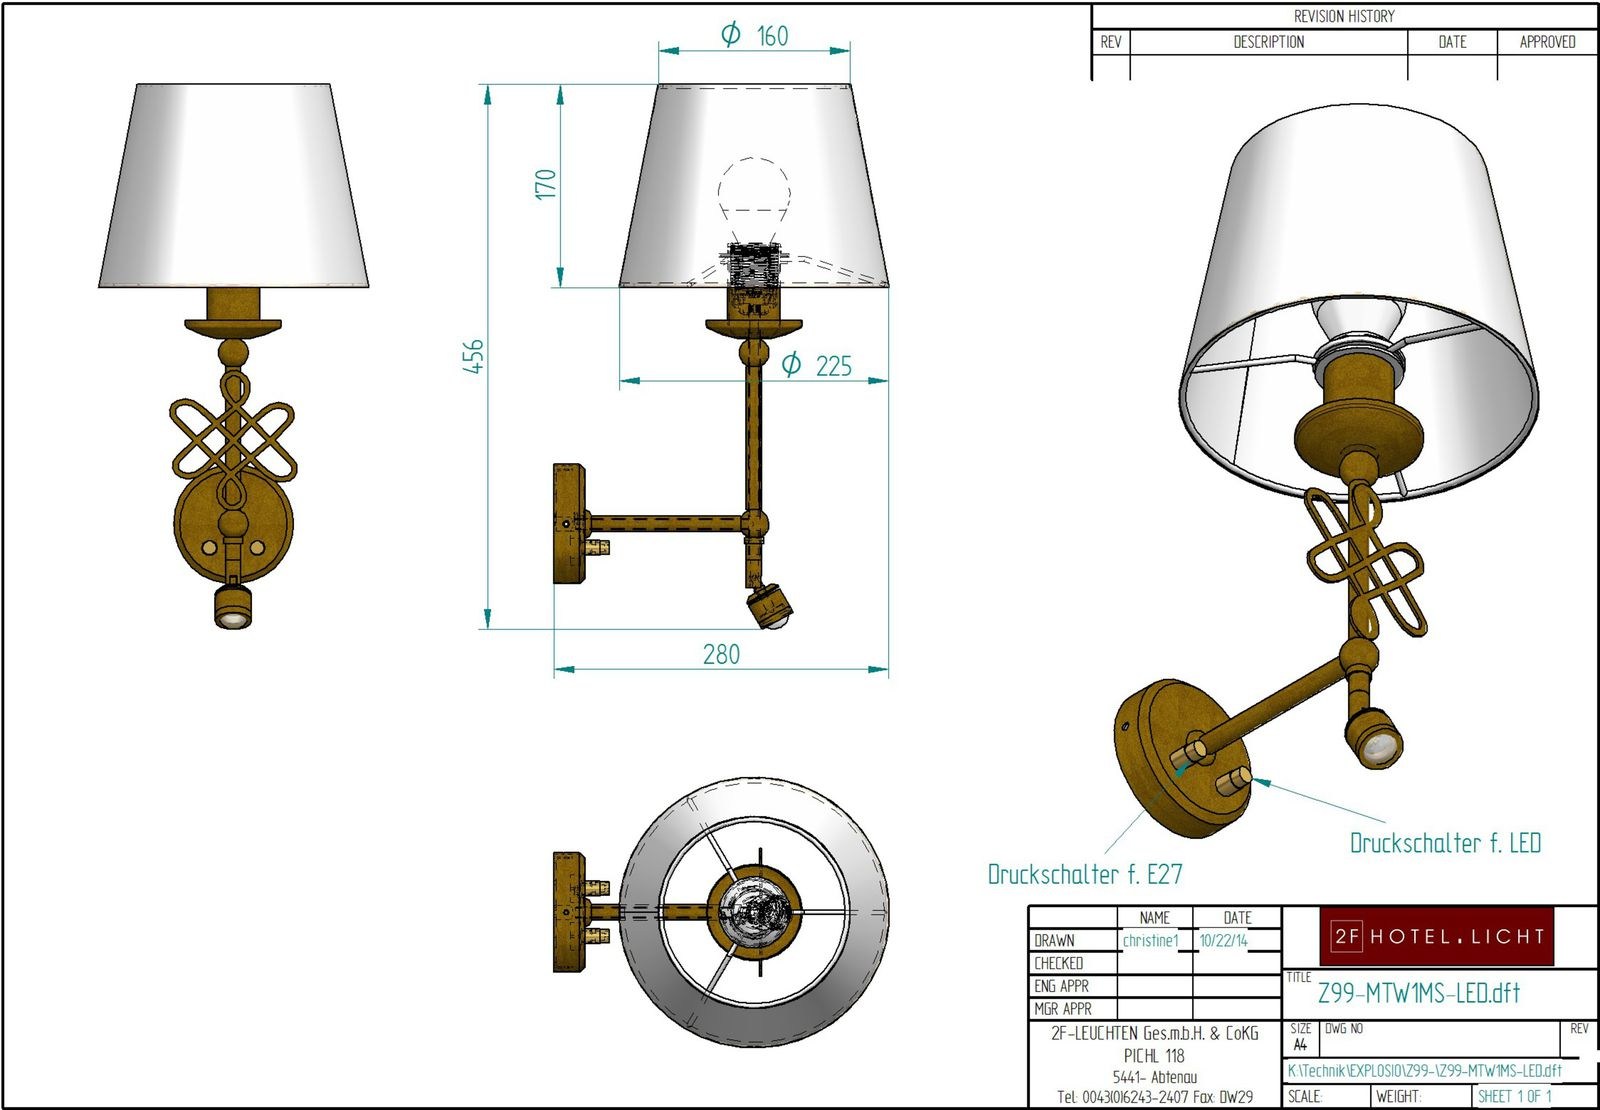 Wall lamp H=471 B=283 technical details: 1xE27 max. 60W